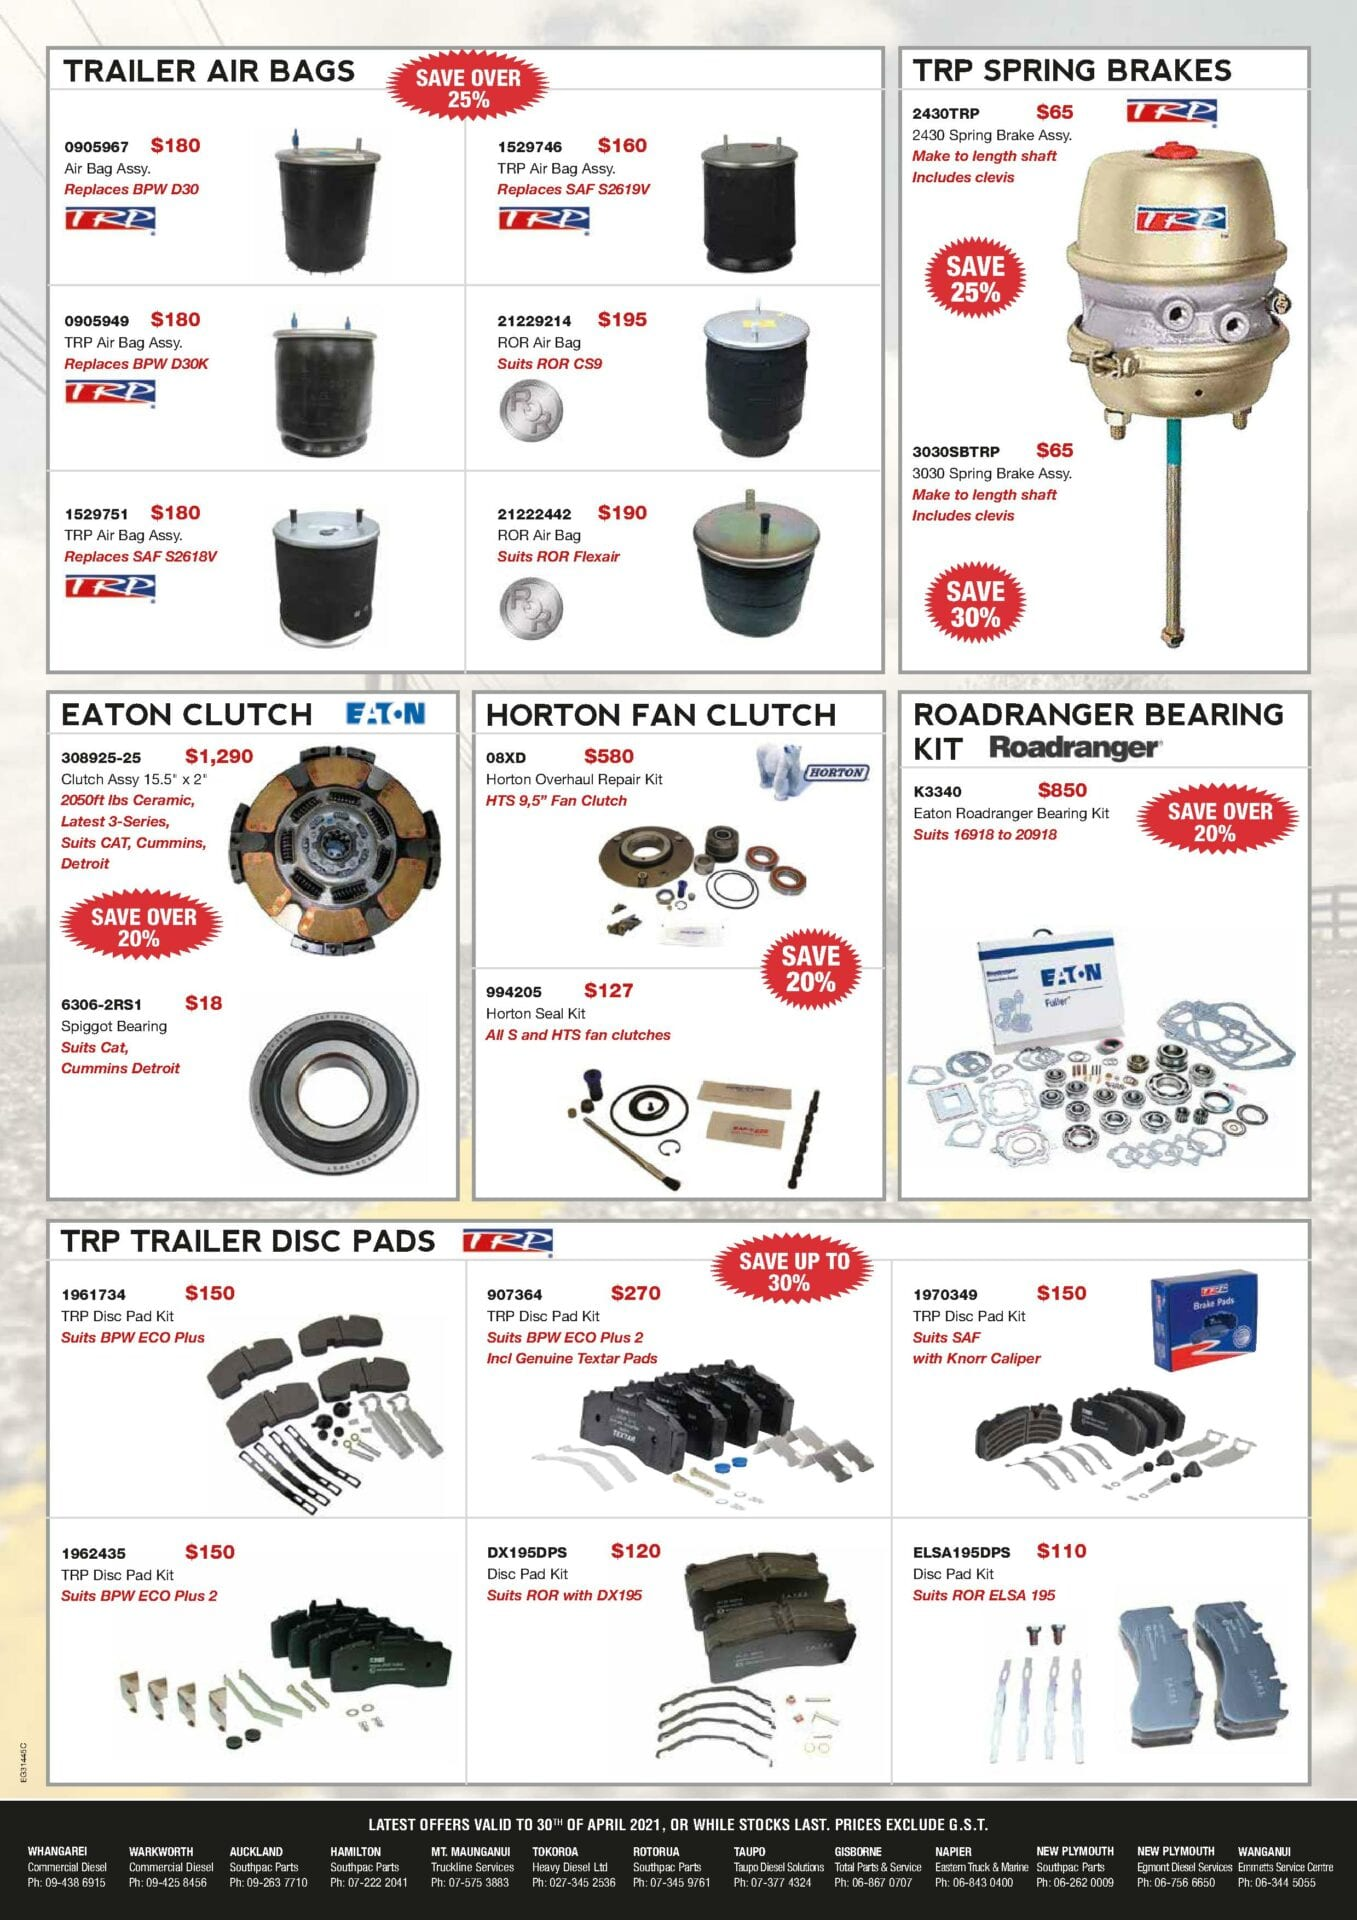 LATEST OFFERS advert-APRIL 2021 (pg3)